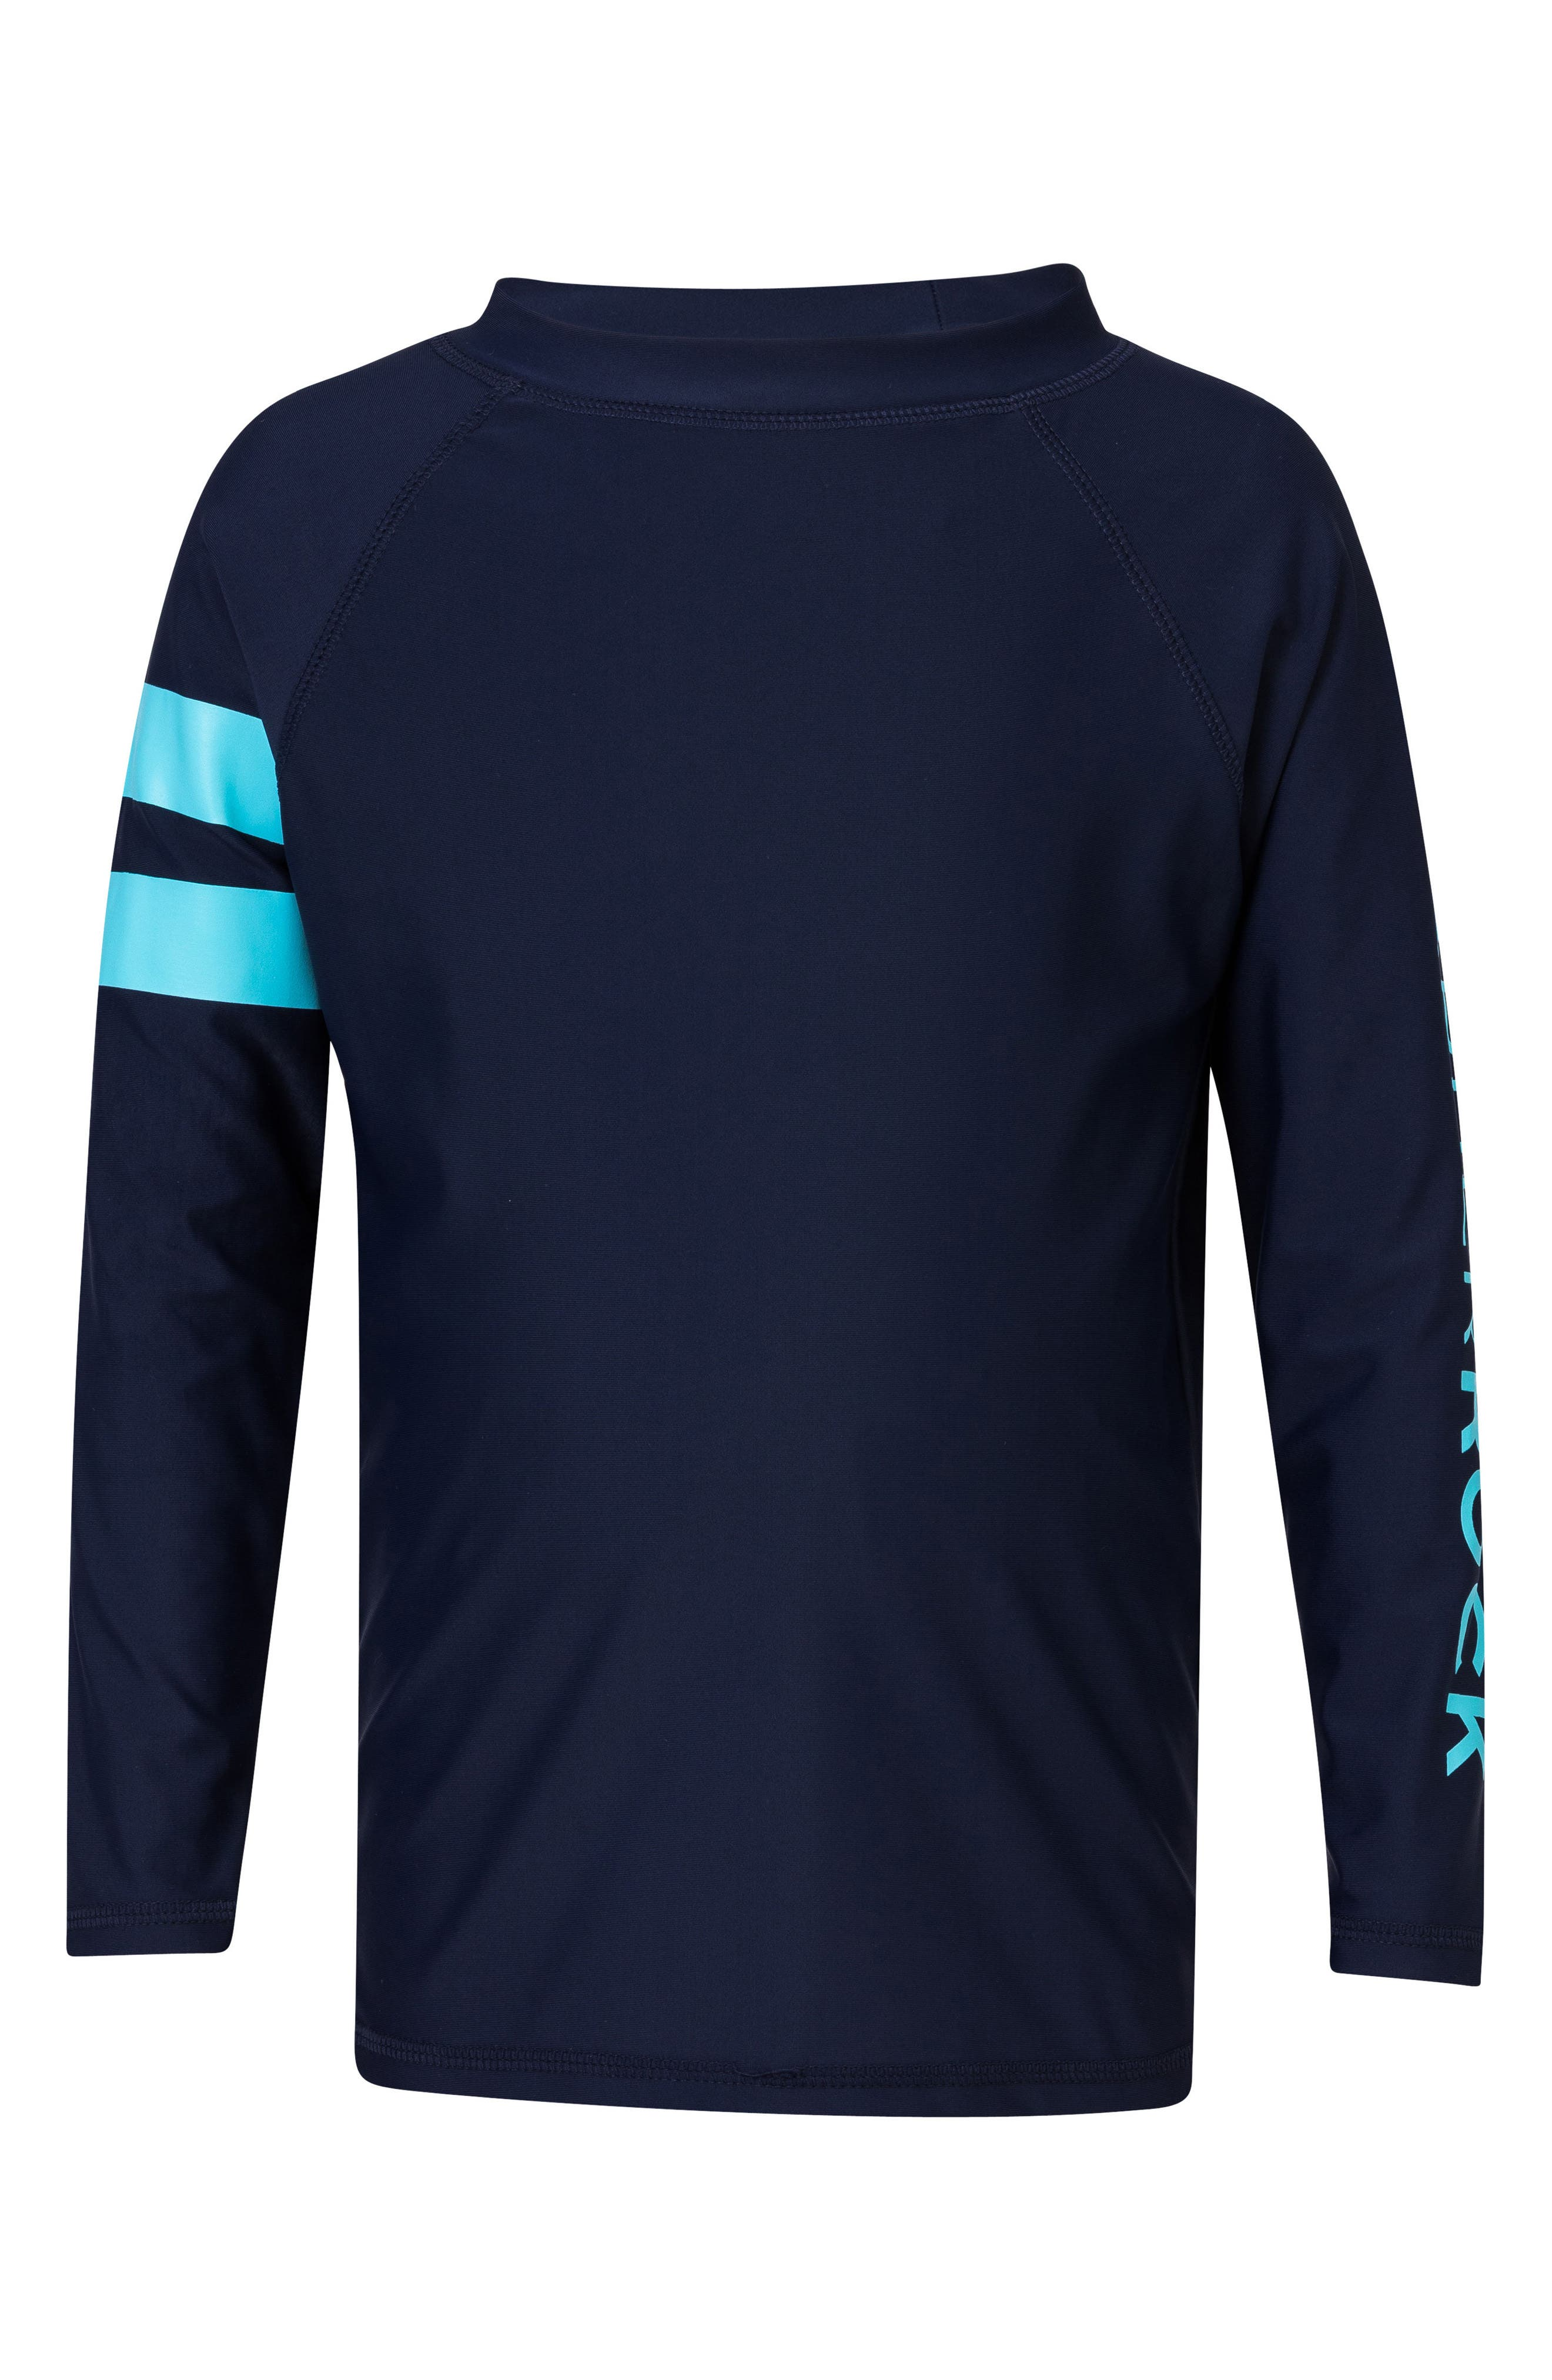 Snapper Rock Raglan Long Sleeve Rashguard (Baby Boys, Toddler Boys & Little Boys)